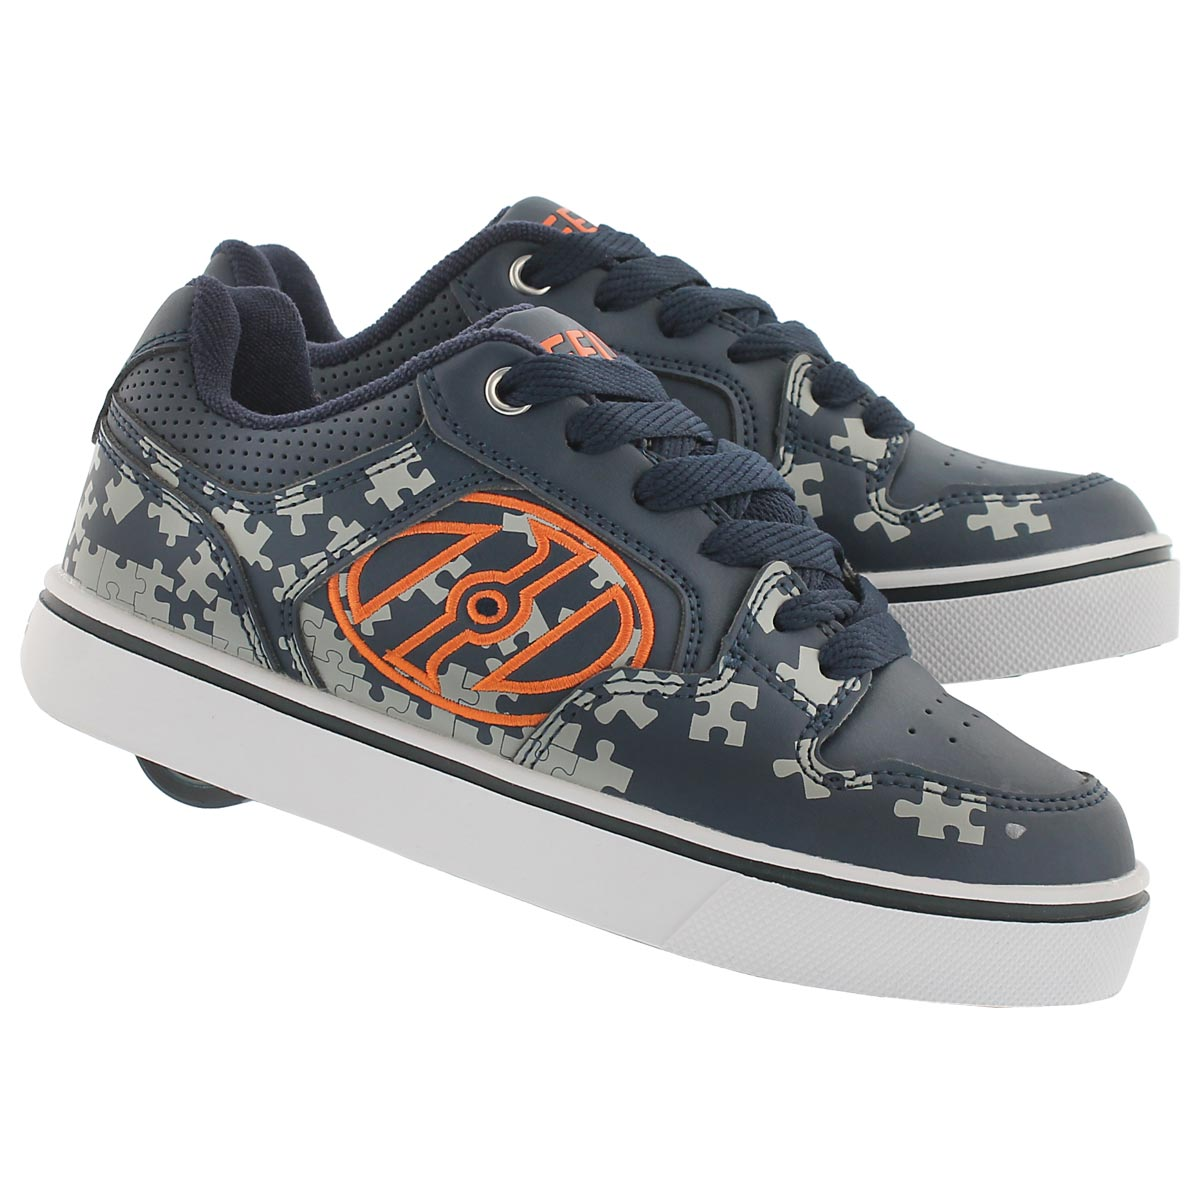 Bys Motion Plus blk/gry/or skate sneaker